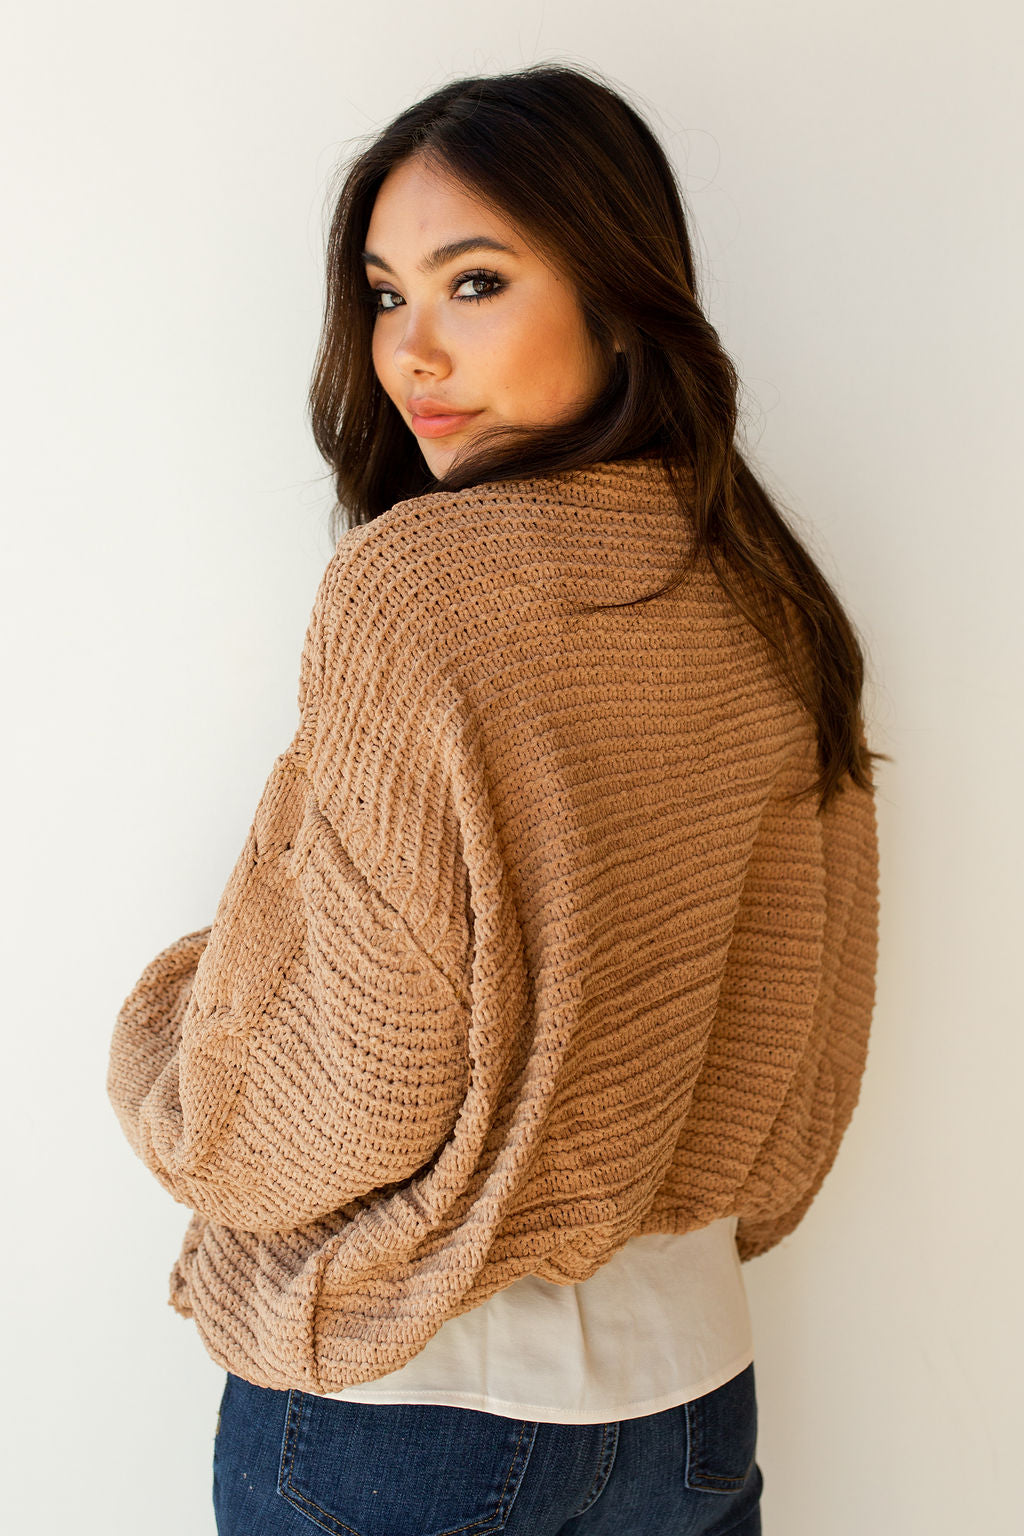 mode, scandi open cable sweater